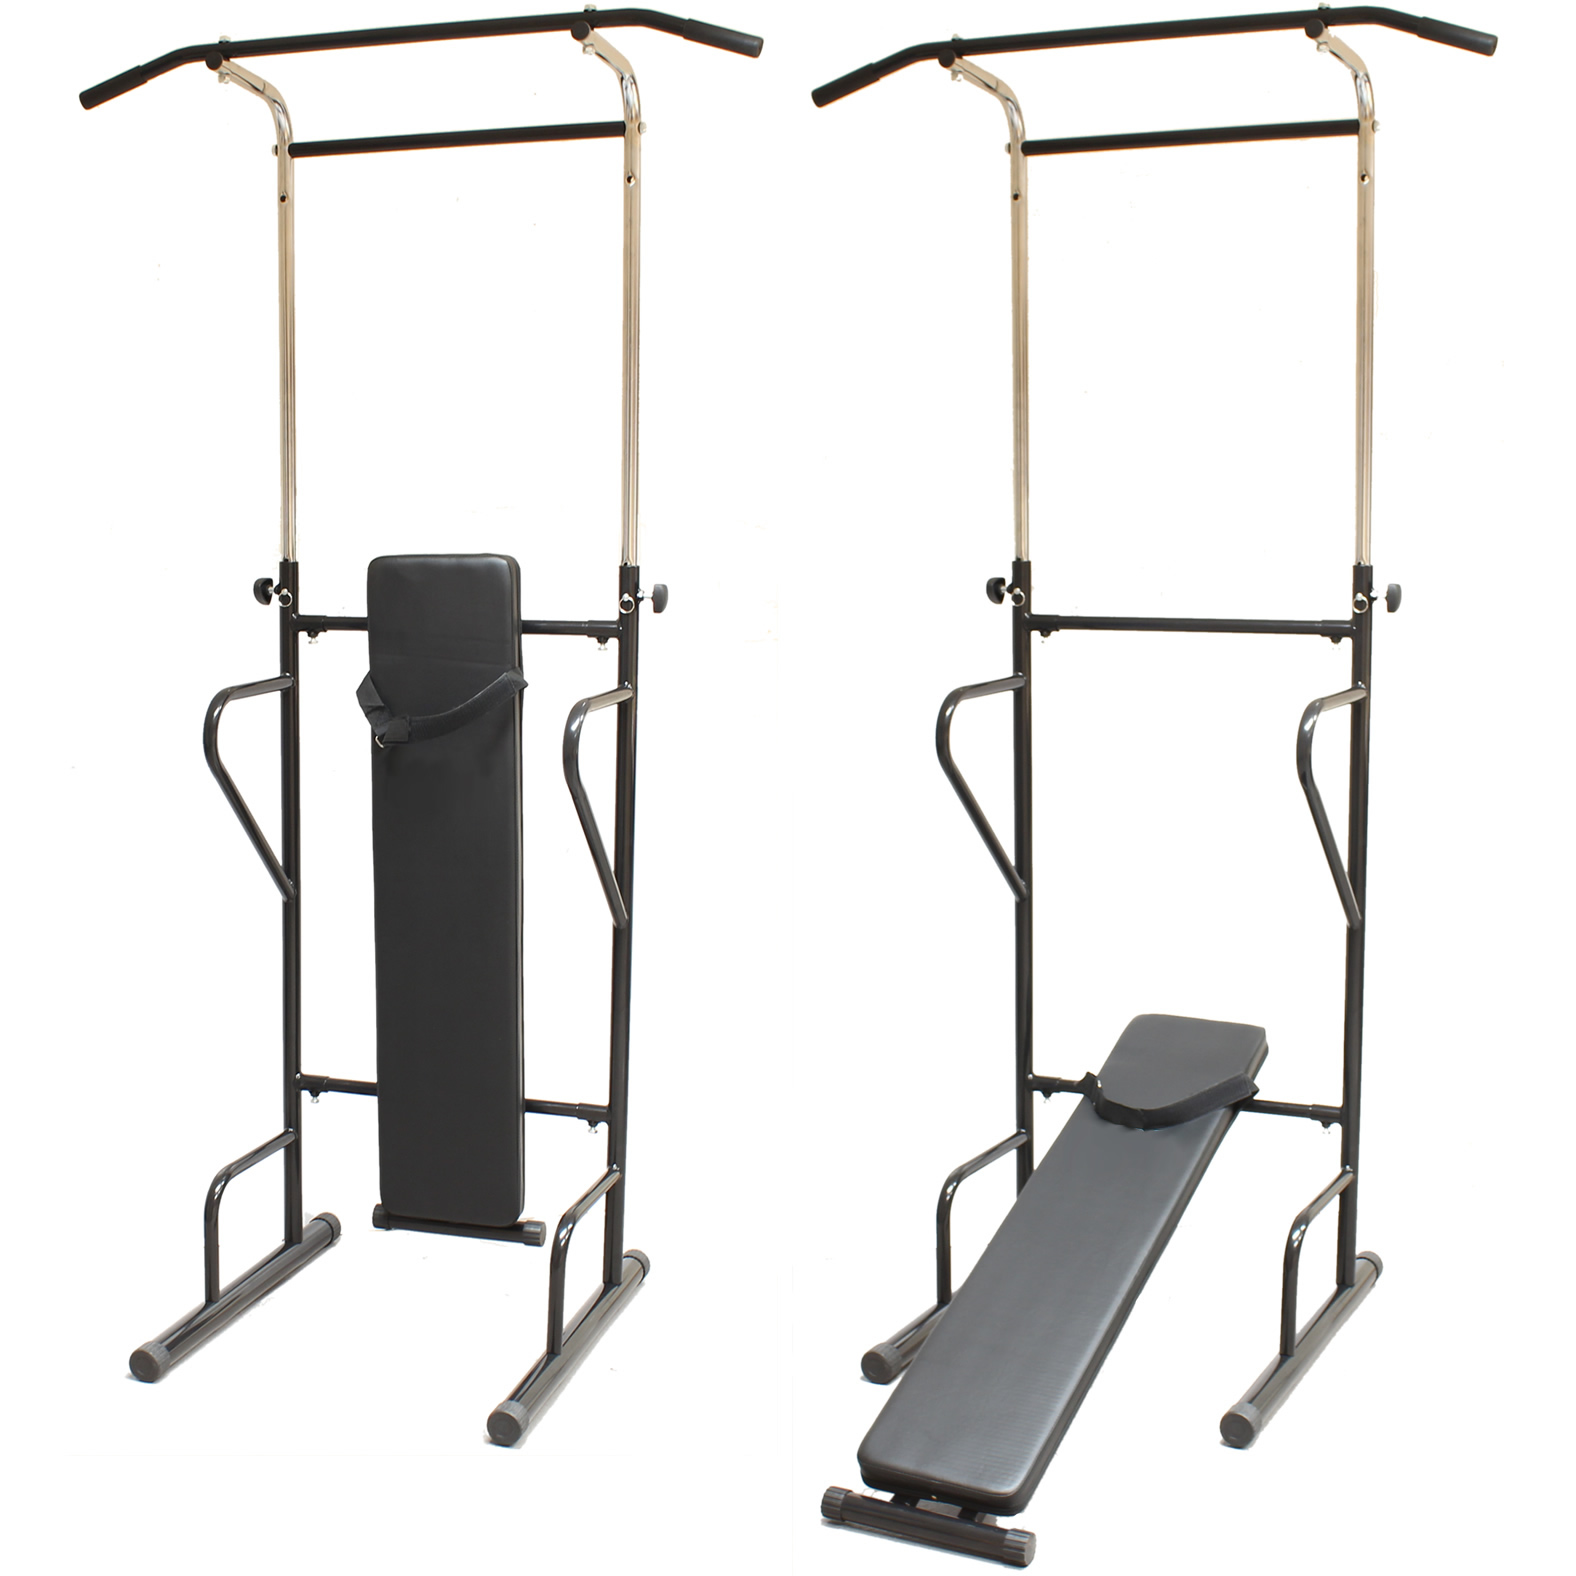 FITNESS POWER TOWER DIP STATION SIT/PULL/PRESS/CHIN UP BENCH BAR AB HOME GYM ABS Enlarged Preview